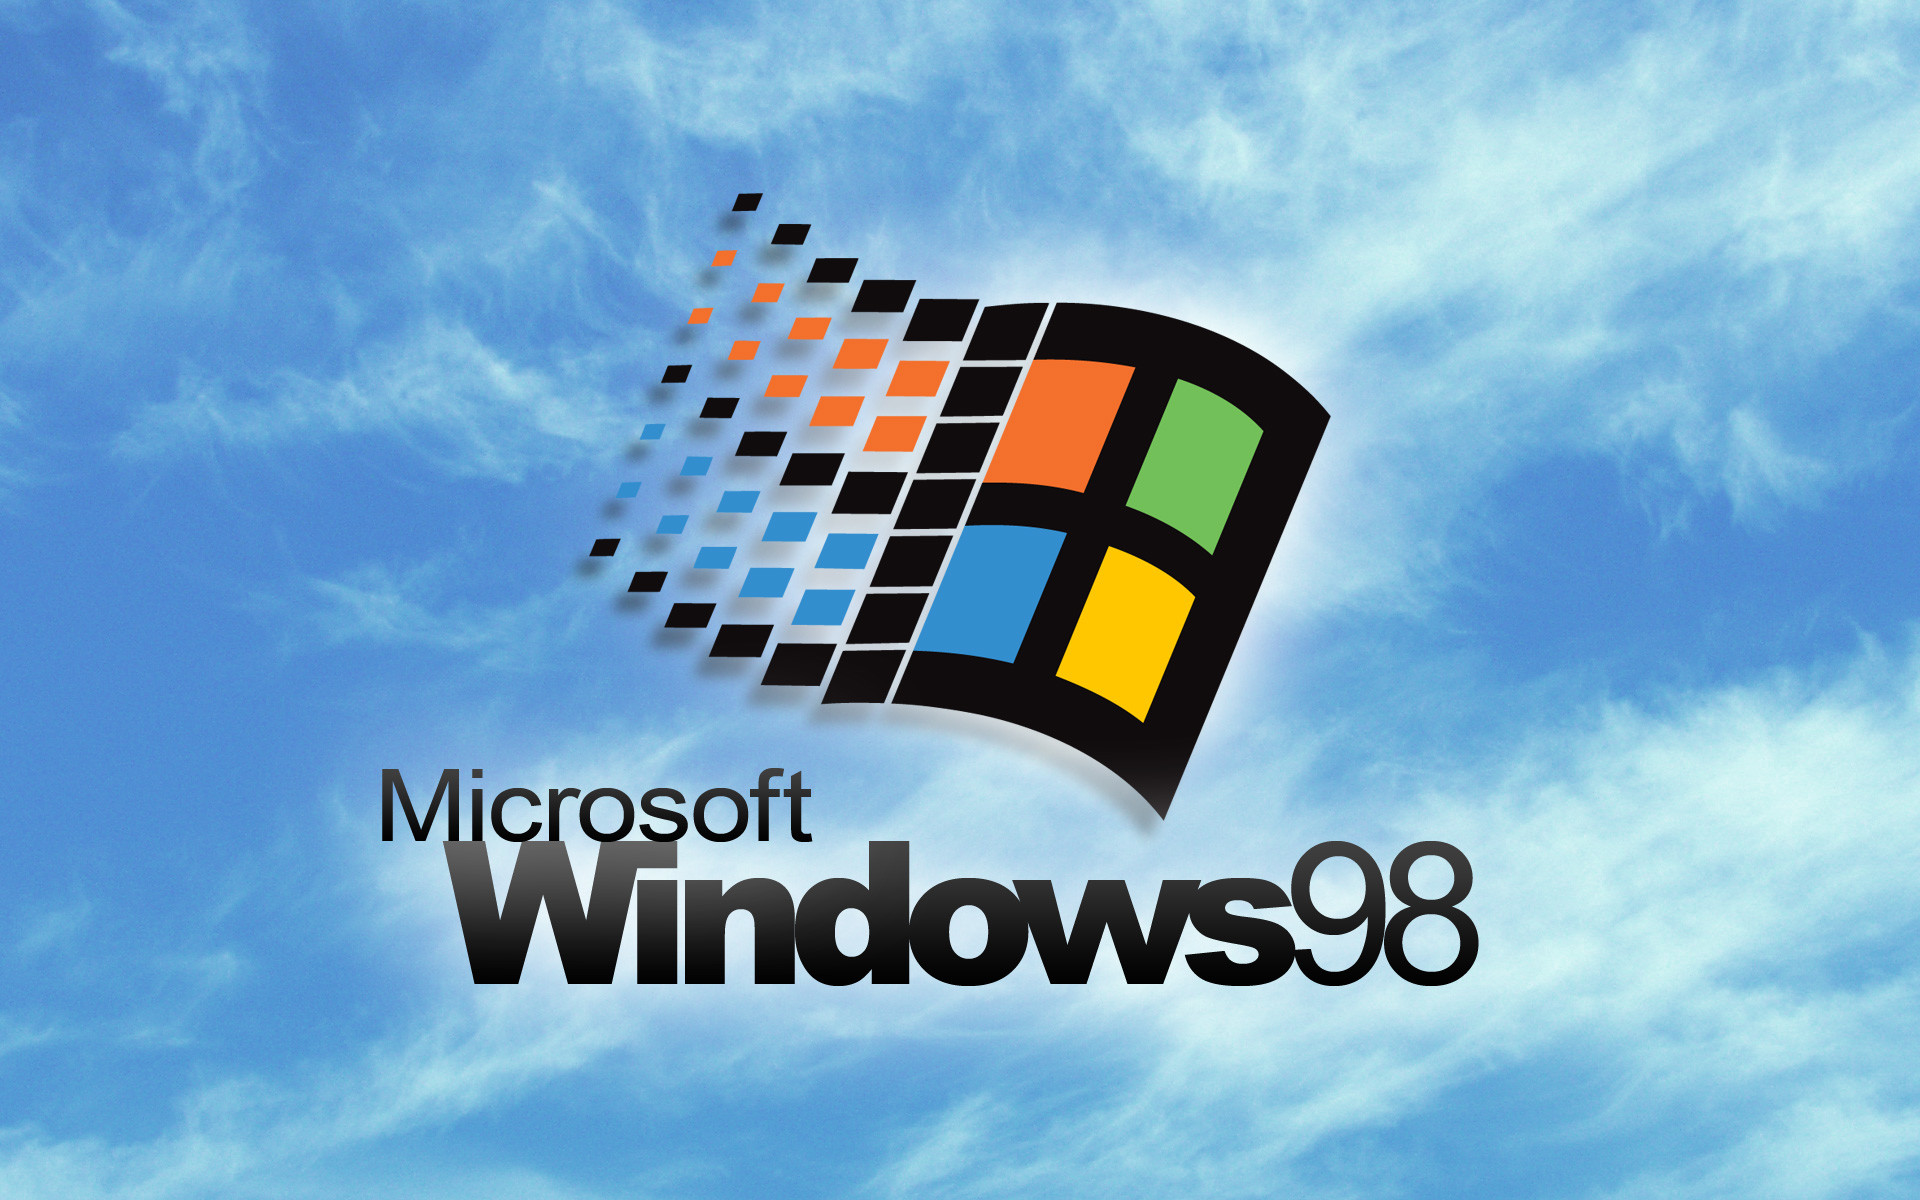 windows 2000 professional wallpaper  u00b7 u2460 wallpapertag